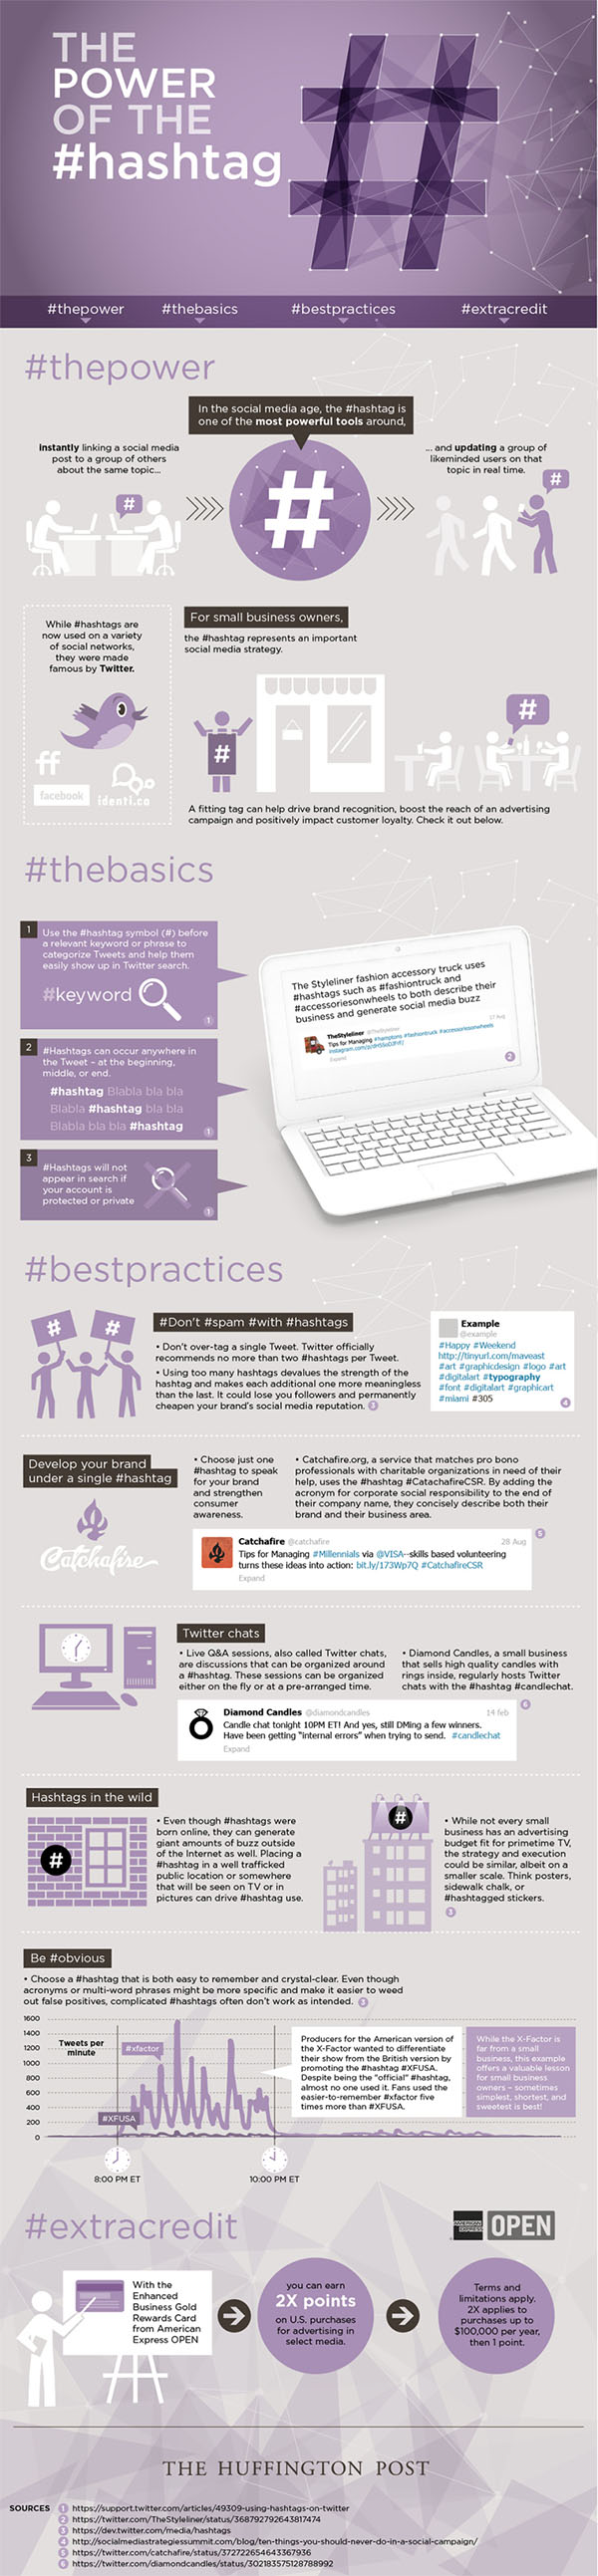 5 Twitter Hashtag Best Practices You Must Follow to Avoid Annoying Your Followers